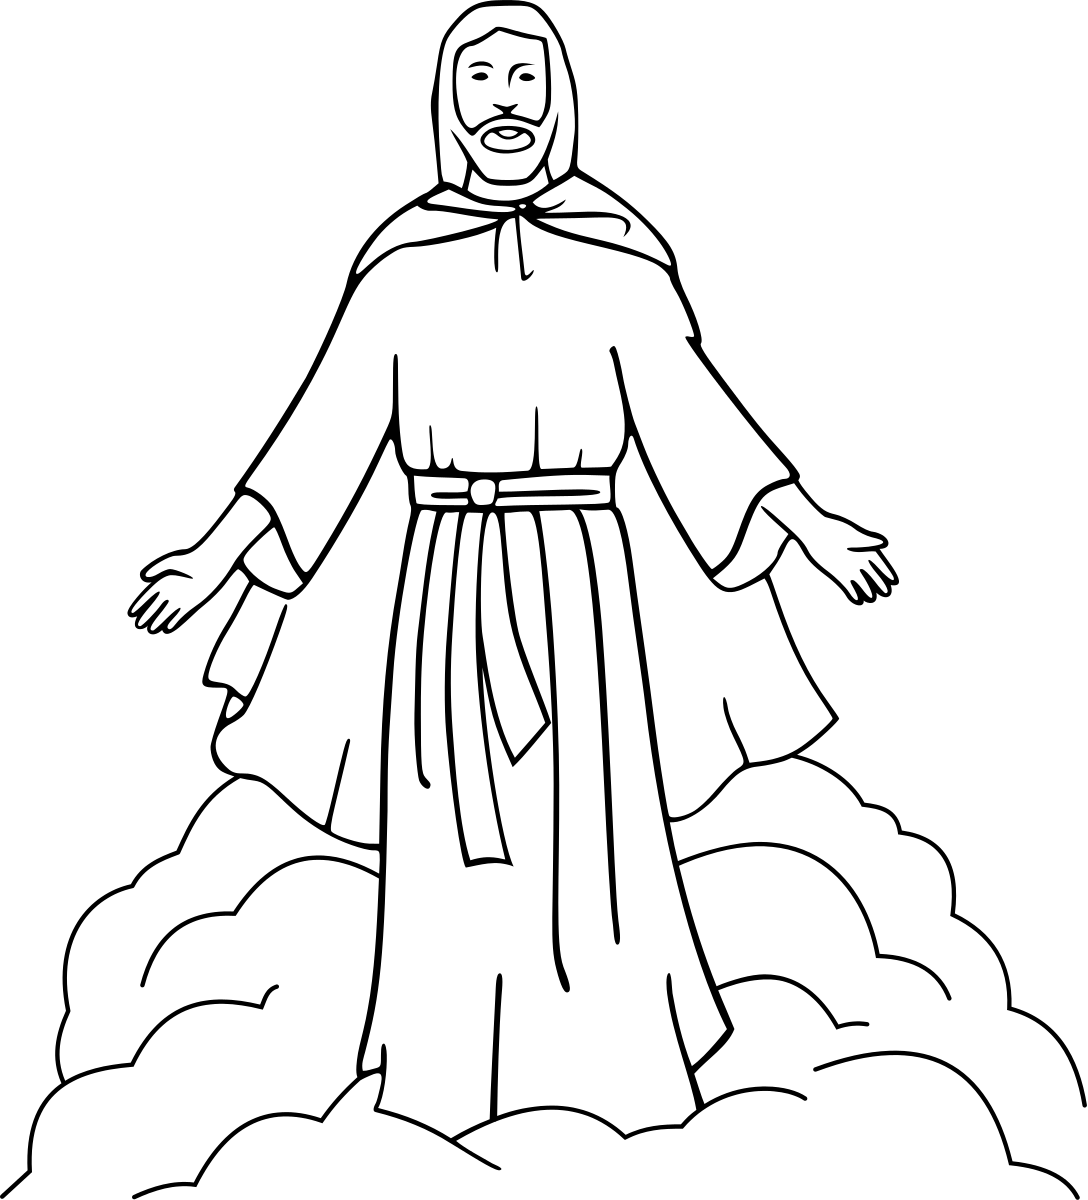 Lds Clipart Jesus Amp Look At Clip Art Images